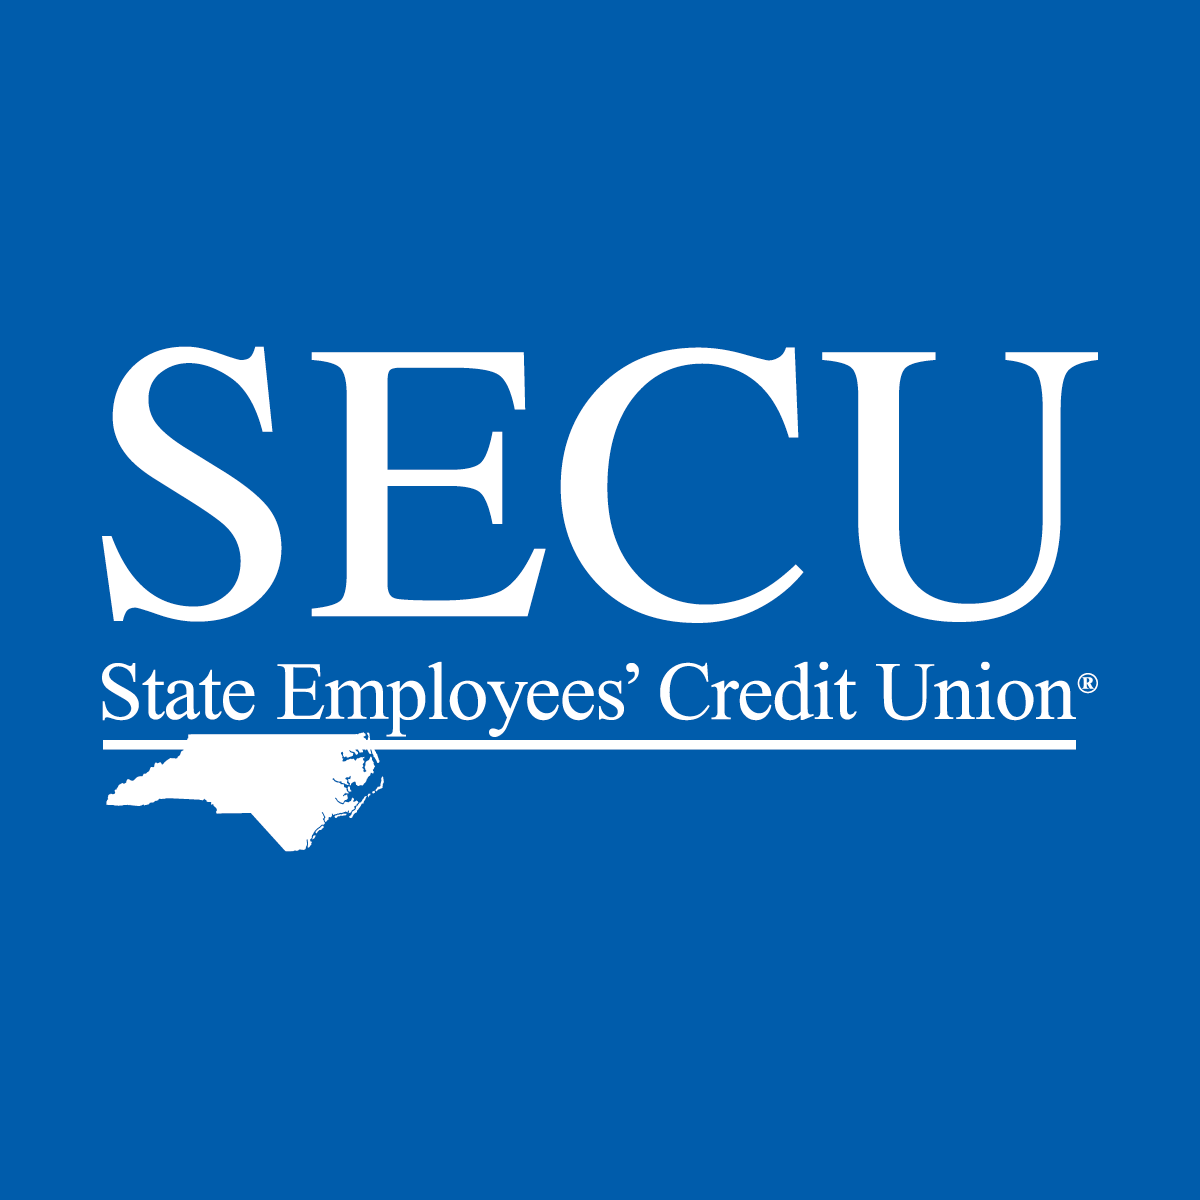 State Employees' Credit Union - Pembroke, NC - Credit Unions